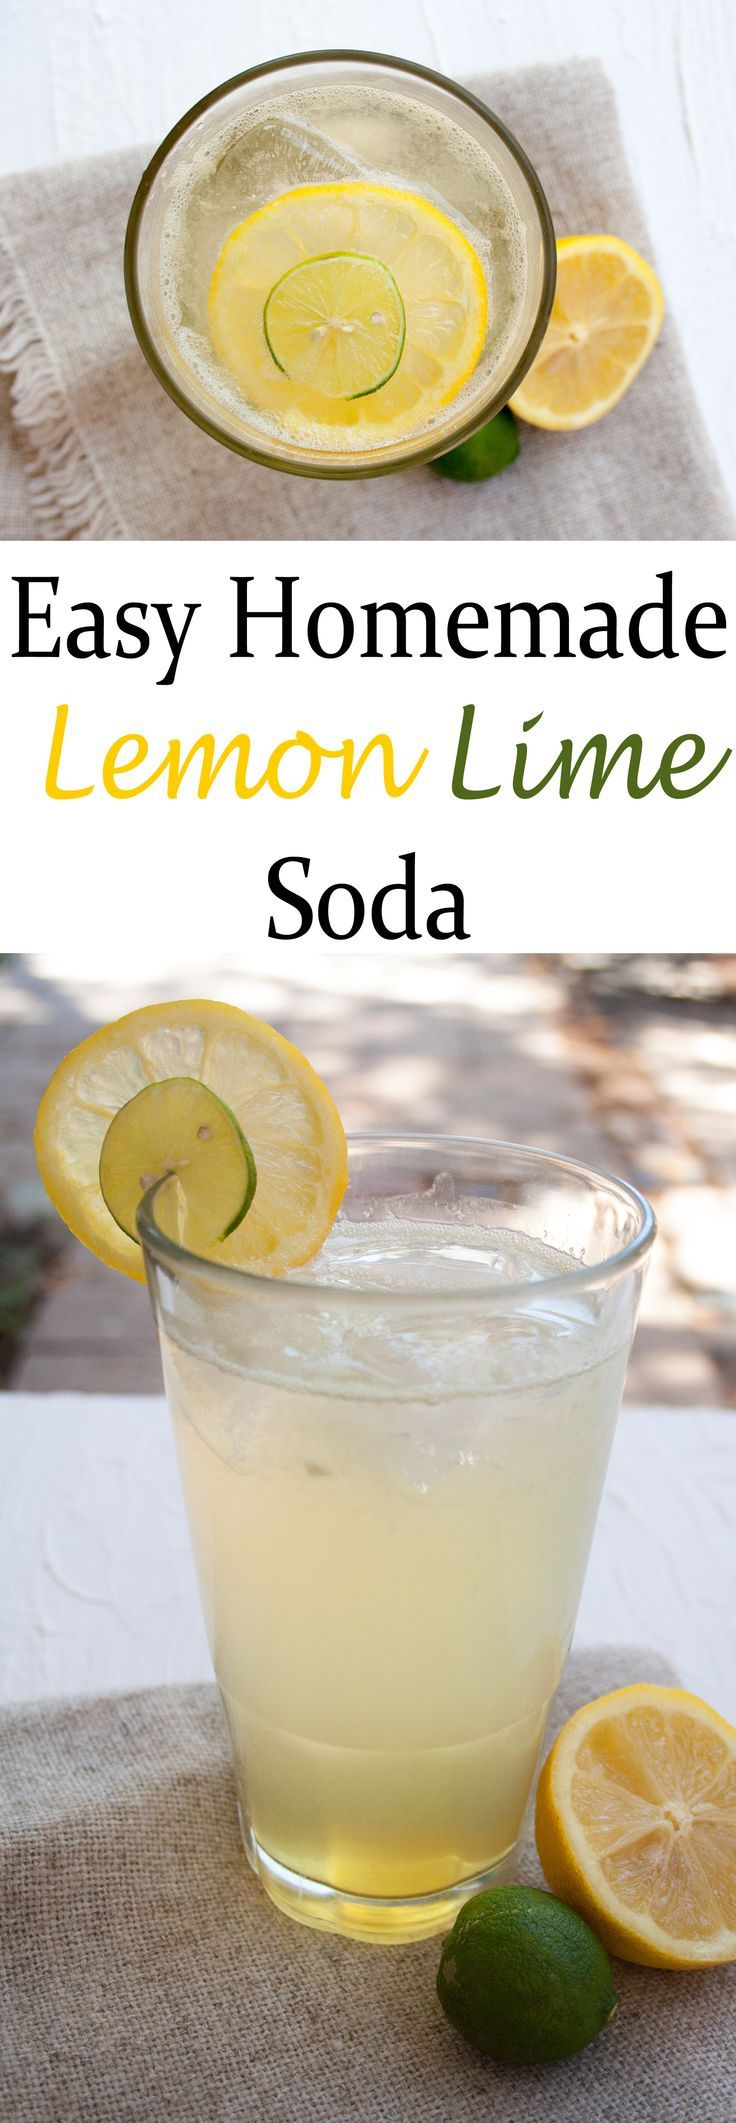 Easy Homemade Lemon Lime Soda - This soda can be made in minutes, and it tastes much better than store bought!